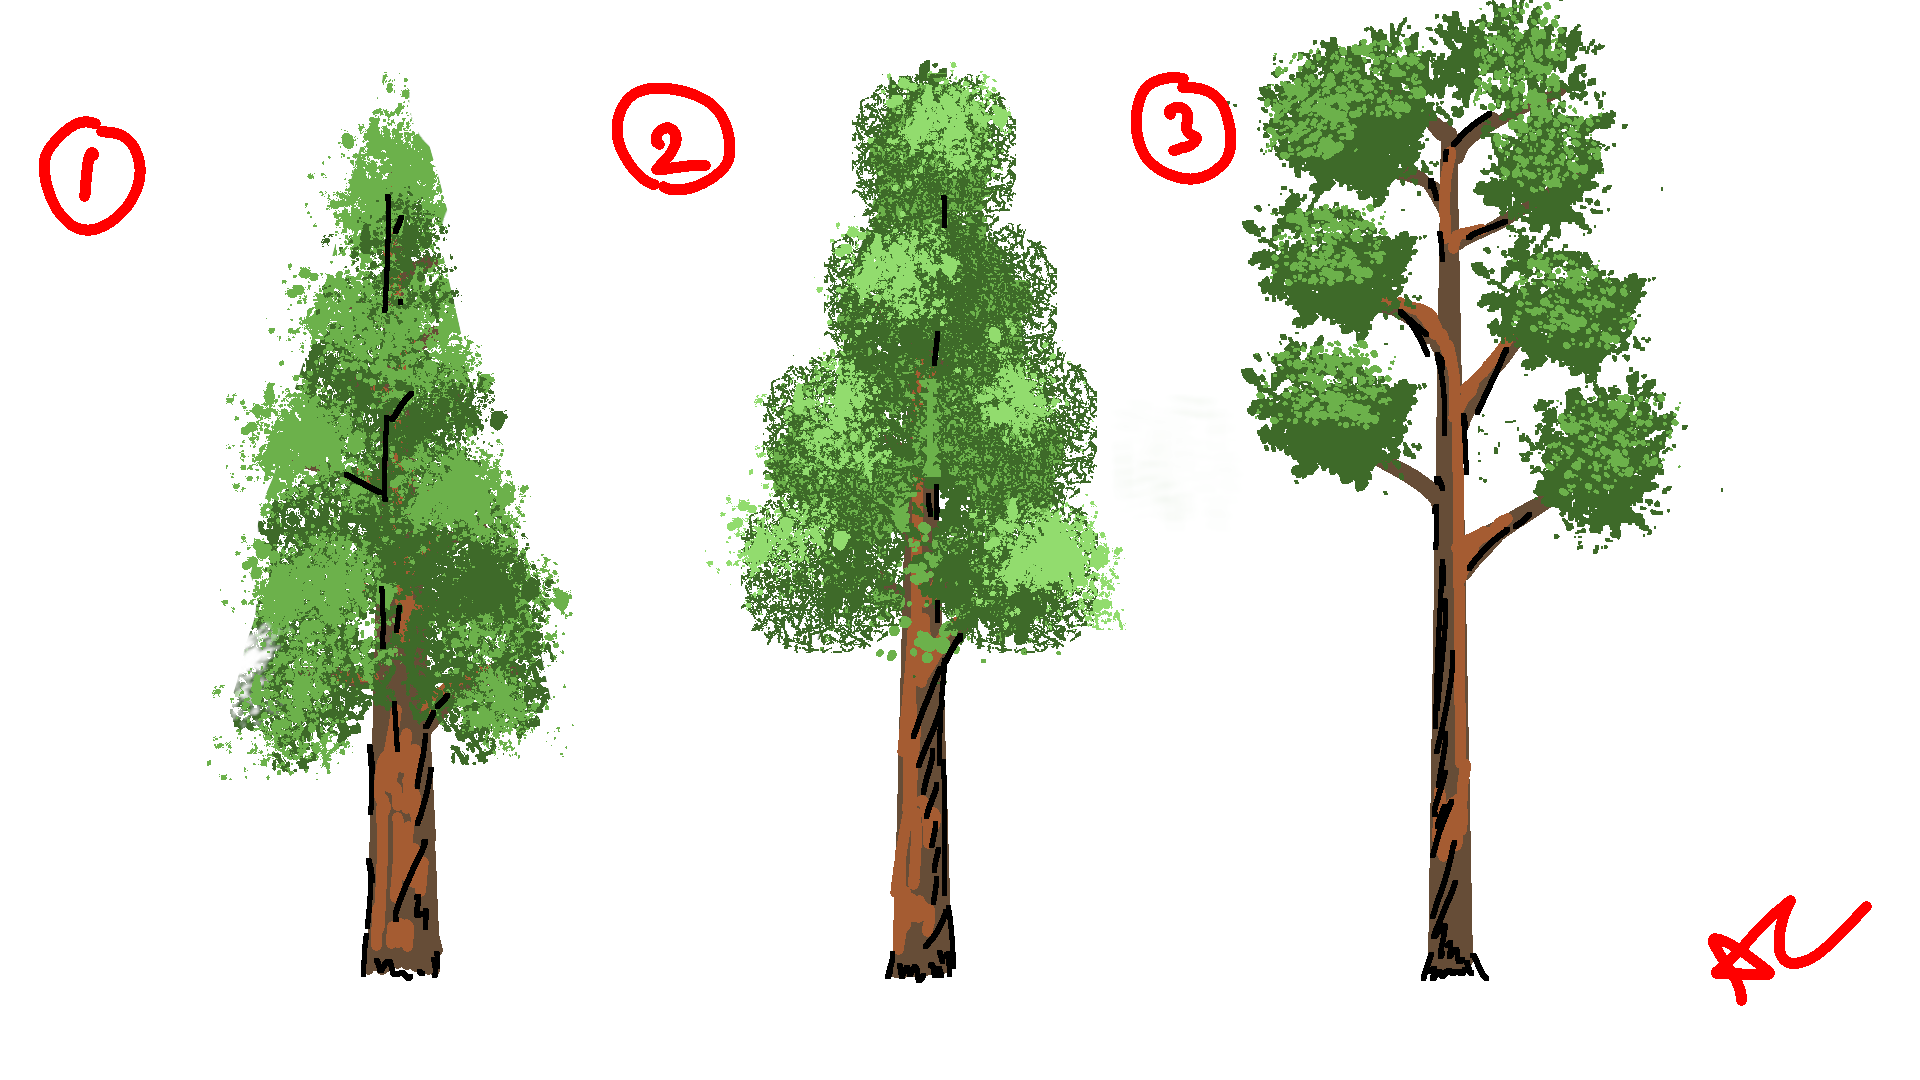 004_Trees01.png